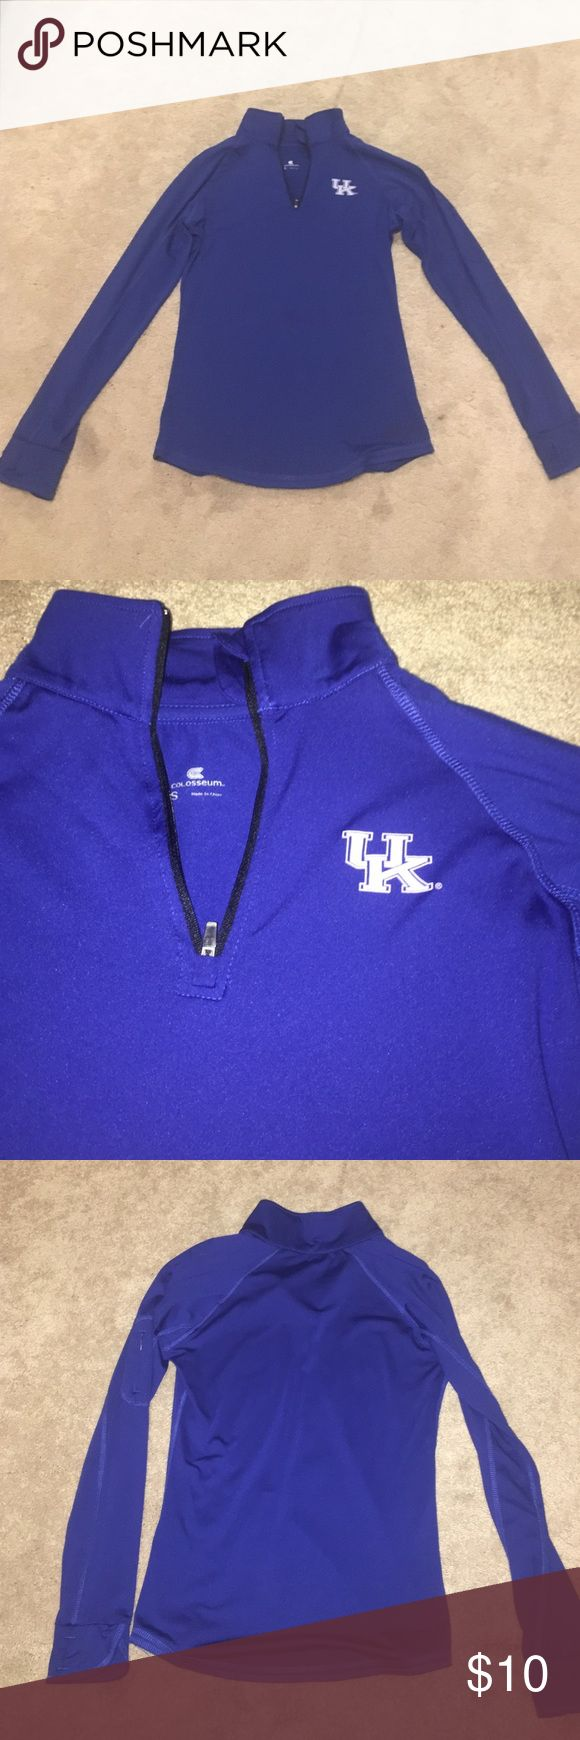 University of Kentucky Athletic Pullover This pullover has a very stretchy breathable material and is perfect for the gym or running or just supporting your favorite team. Go Cats! Jackets & Coats